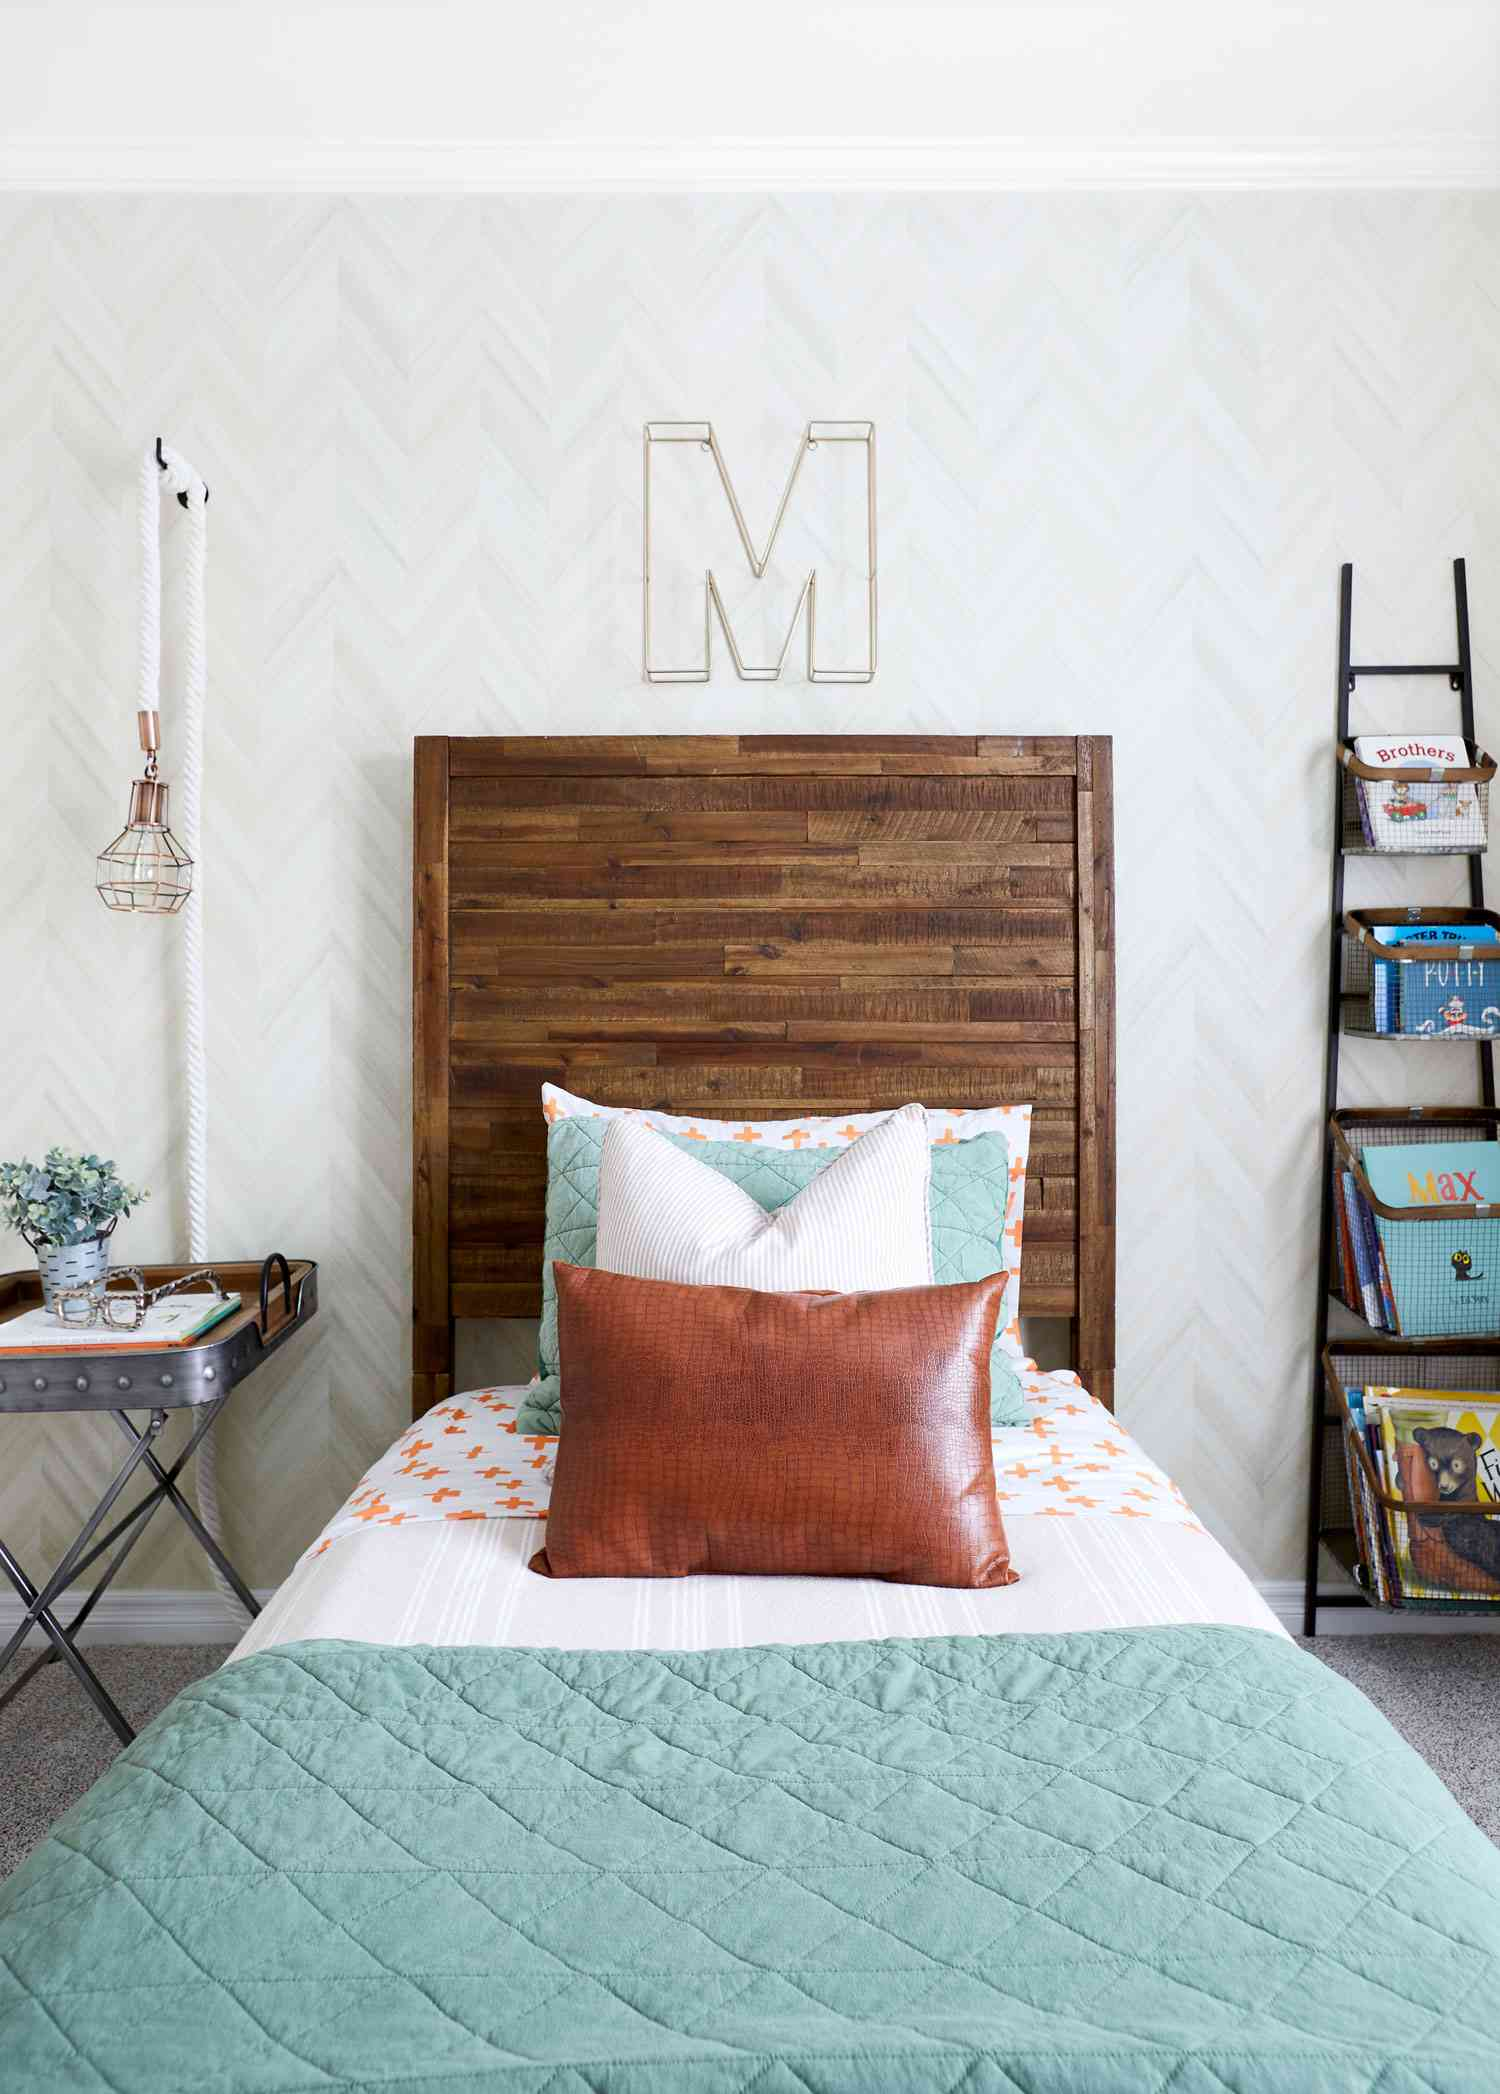 Wooden and teal bed